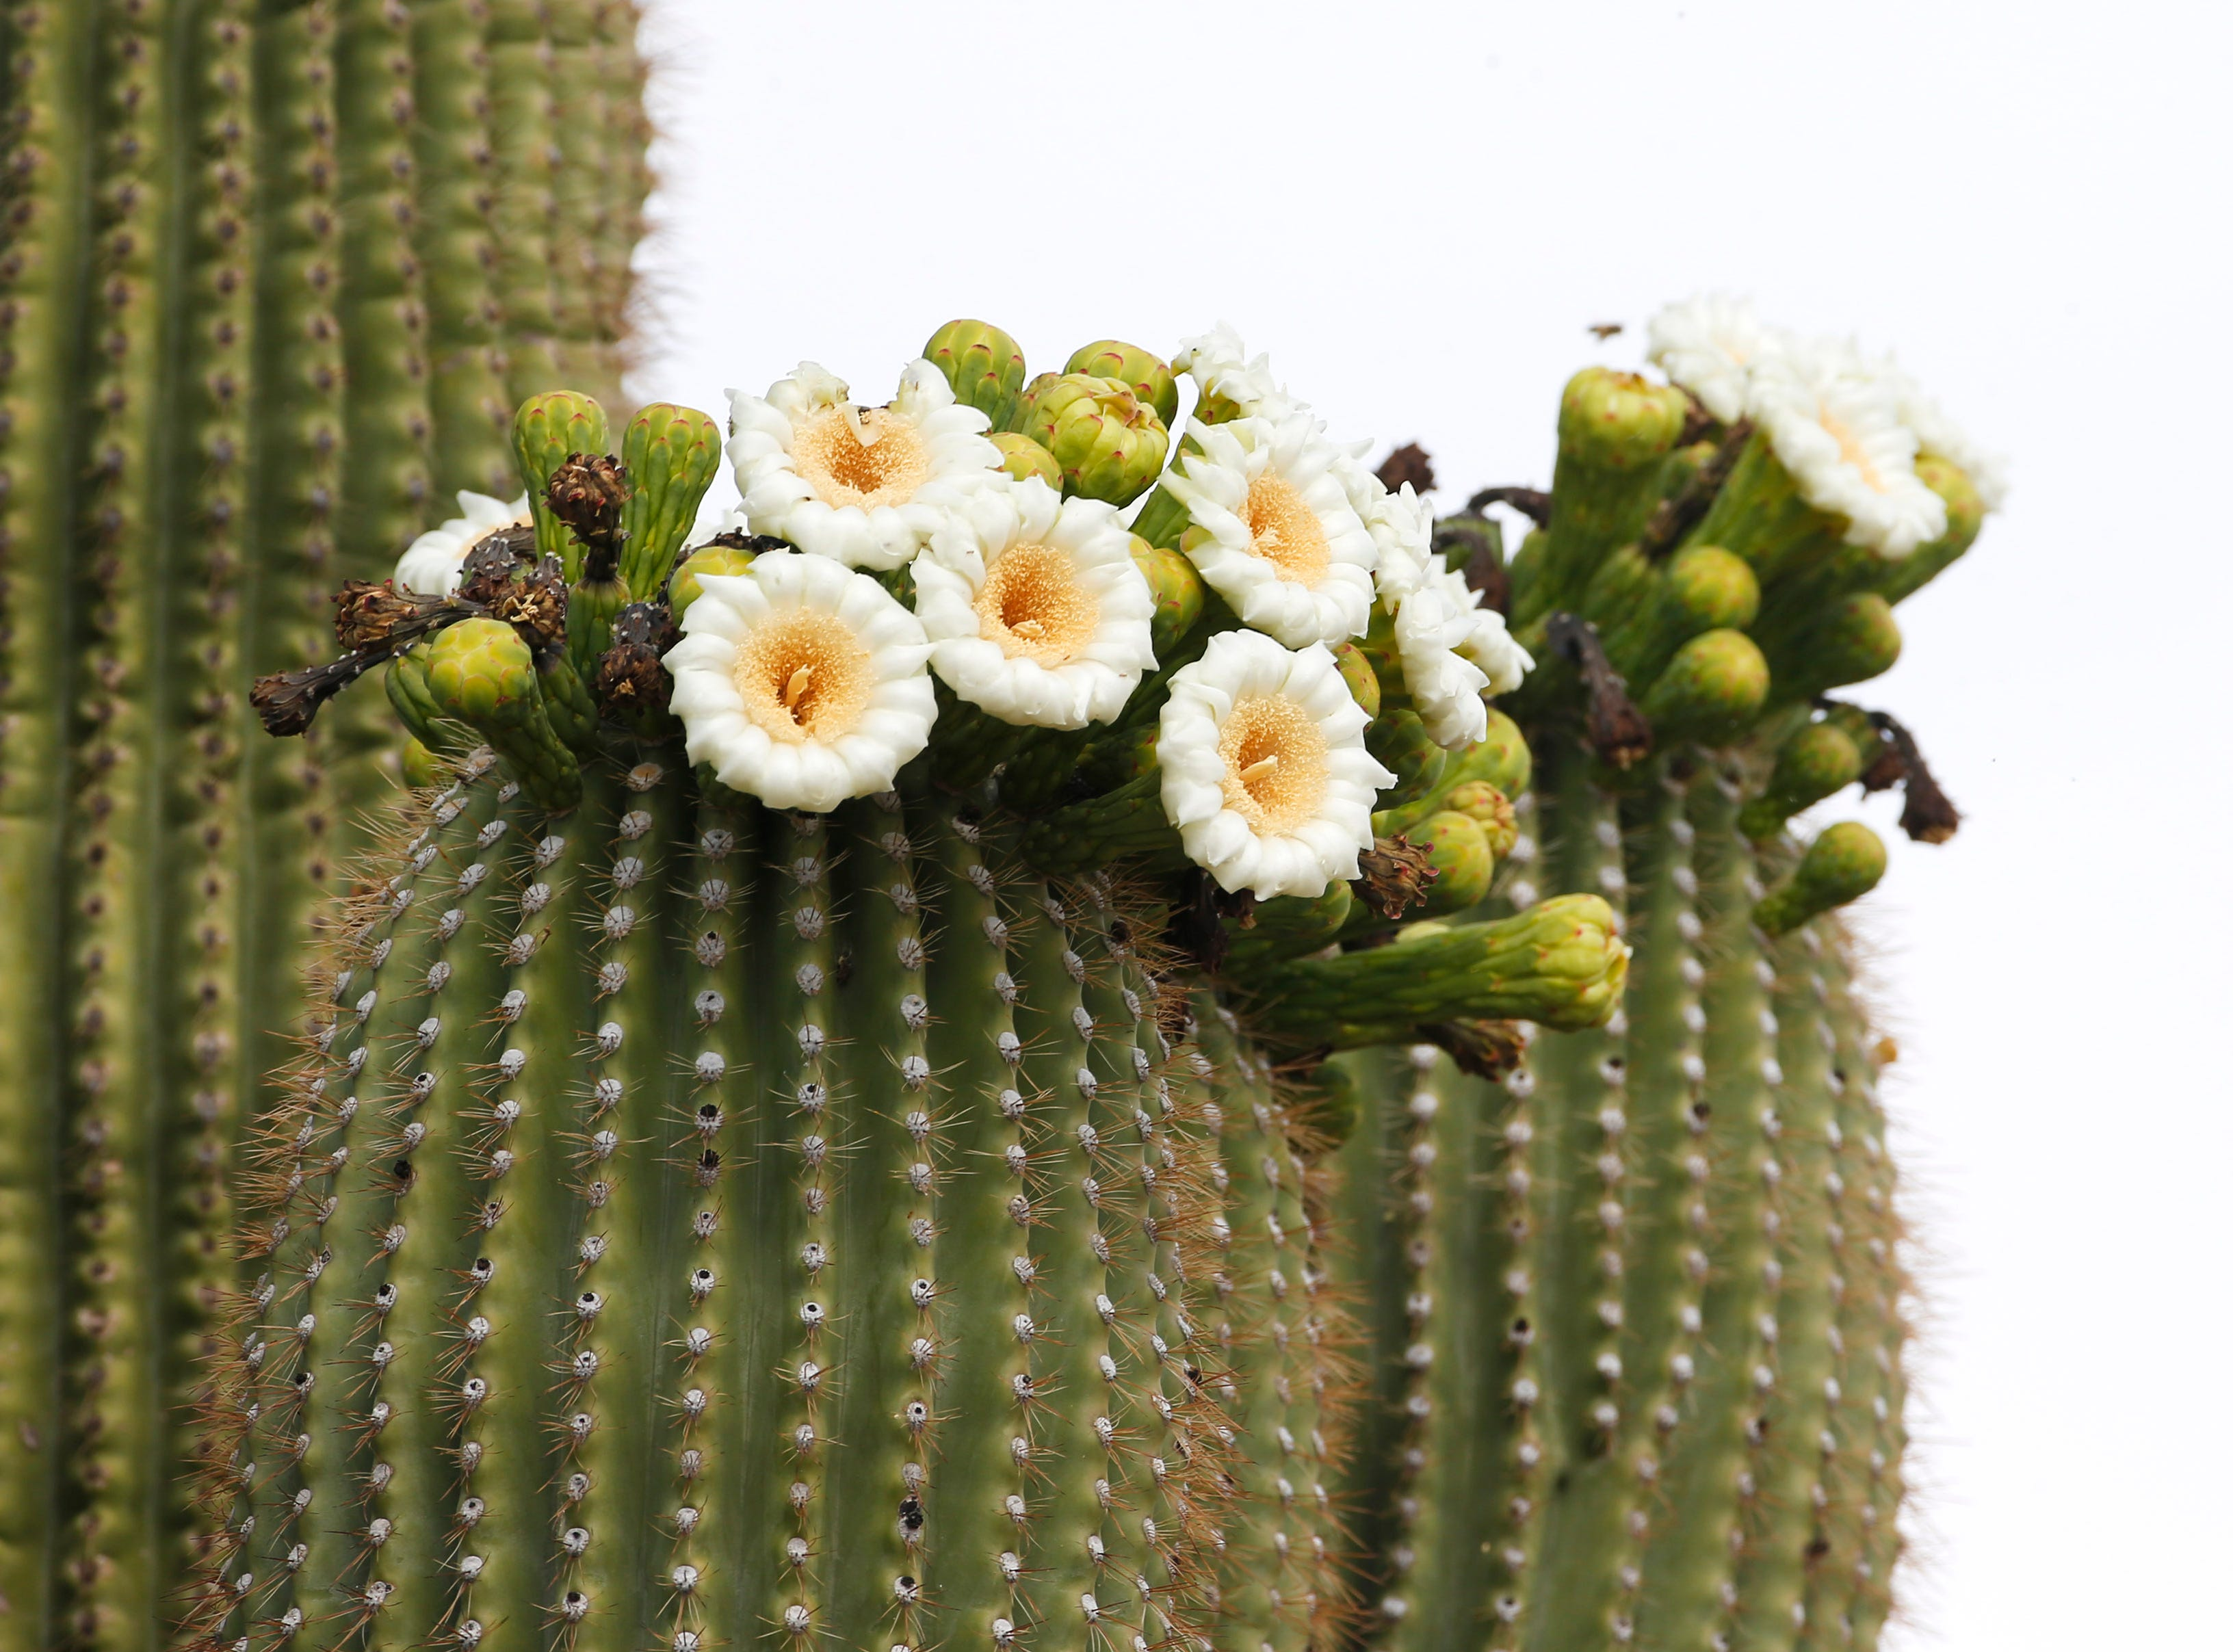 Flowers bloom on a saguaro in the Sonoran Preserve in north Phoenix May 12, 2019. Save Our Sonoran Preserve is opposing the proposed high-density housing next to the preserve.